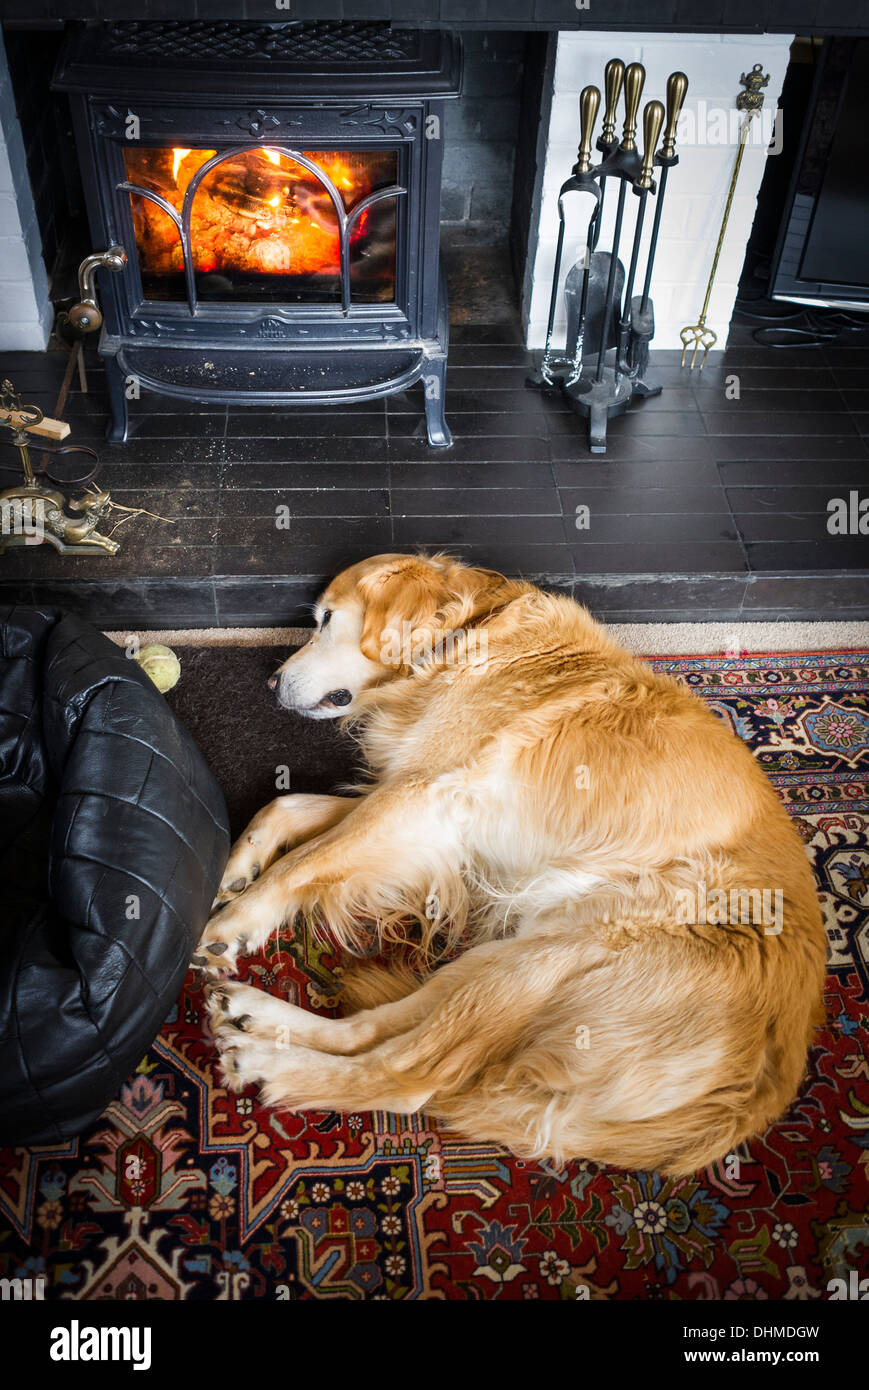 Golden Retriever dog asleep on hearth in front of a wood log fire in UKn - Stock Image